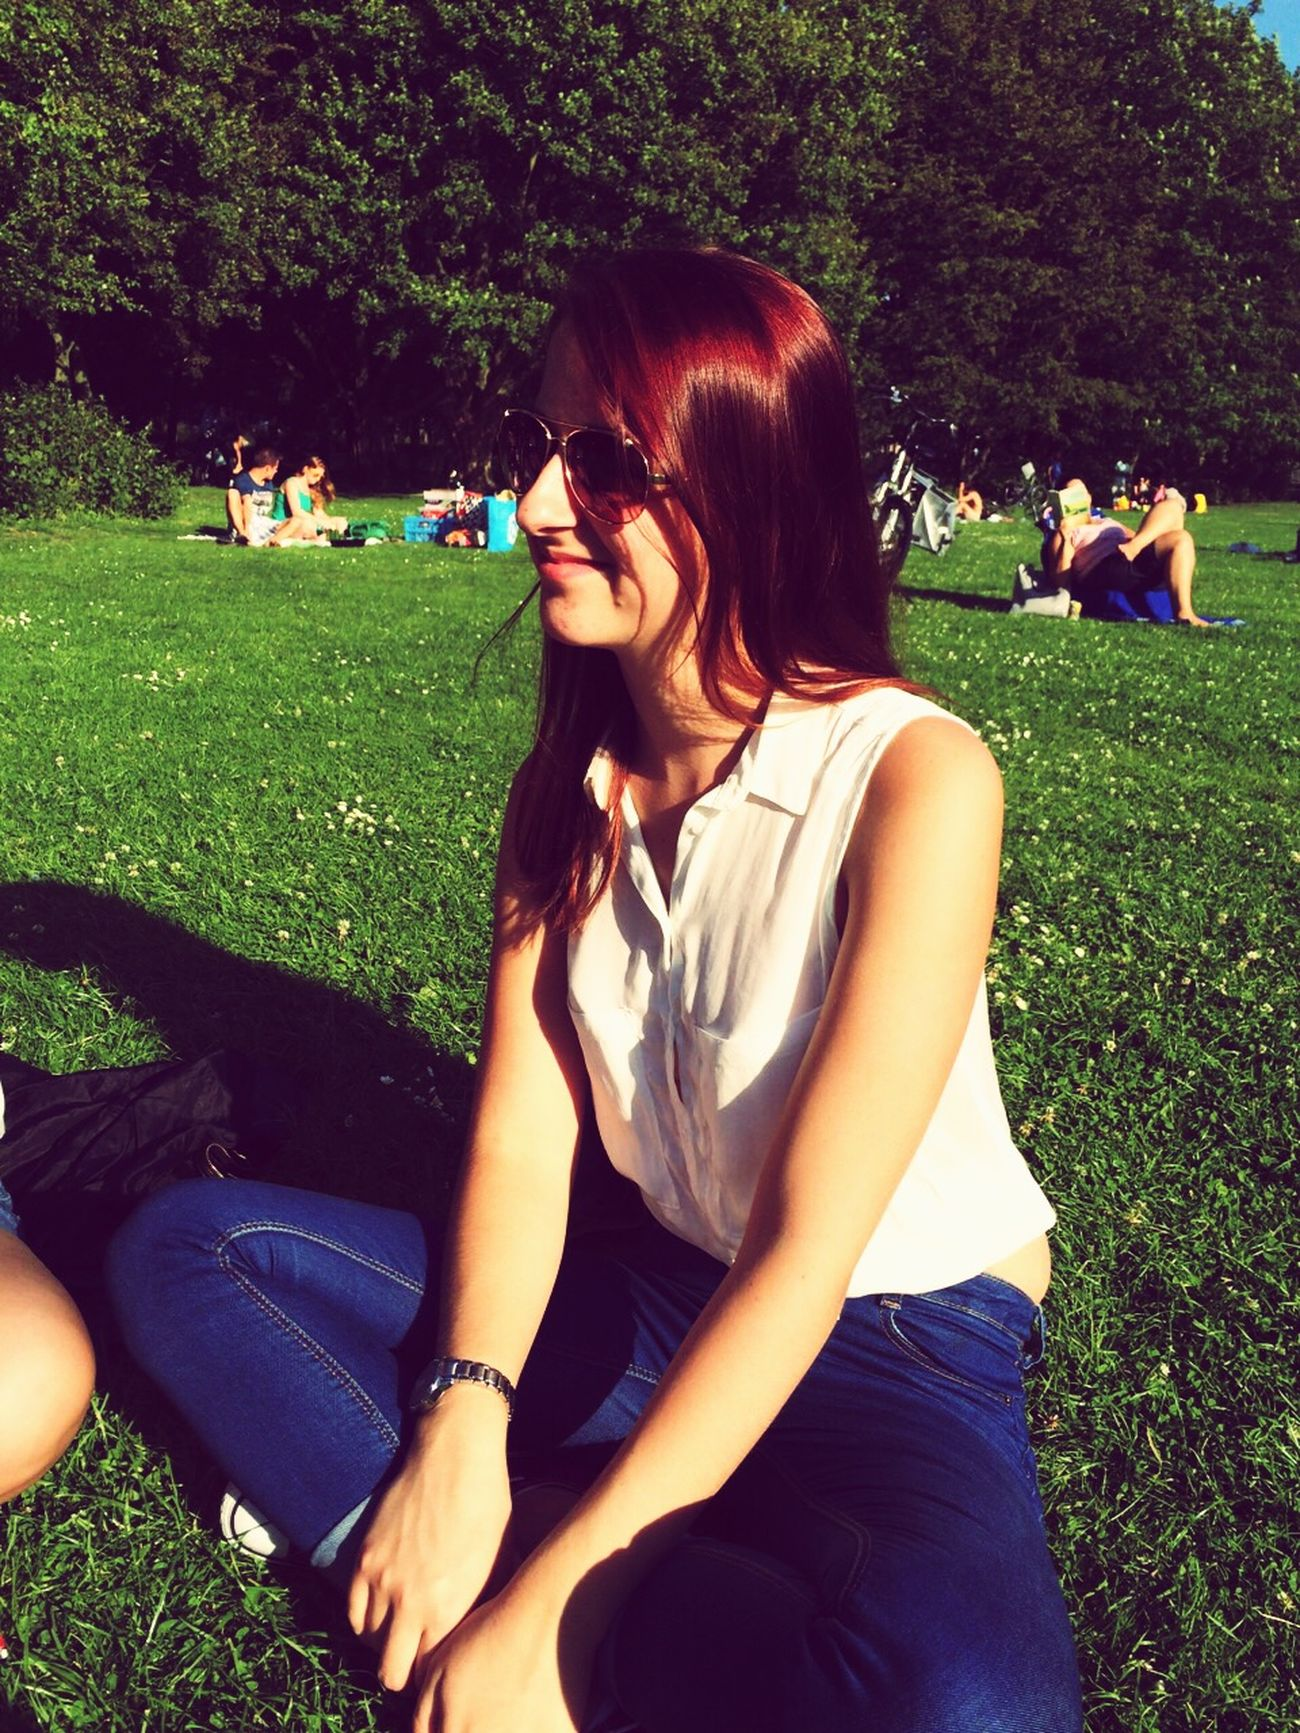 Enjoying The Sun Beautiful Day Hanging Out With Friends My Younger Sister Red Hair Rotterdam Vroesenpark